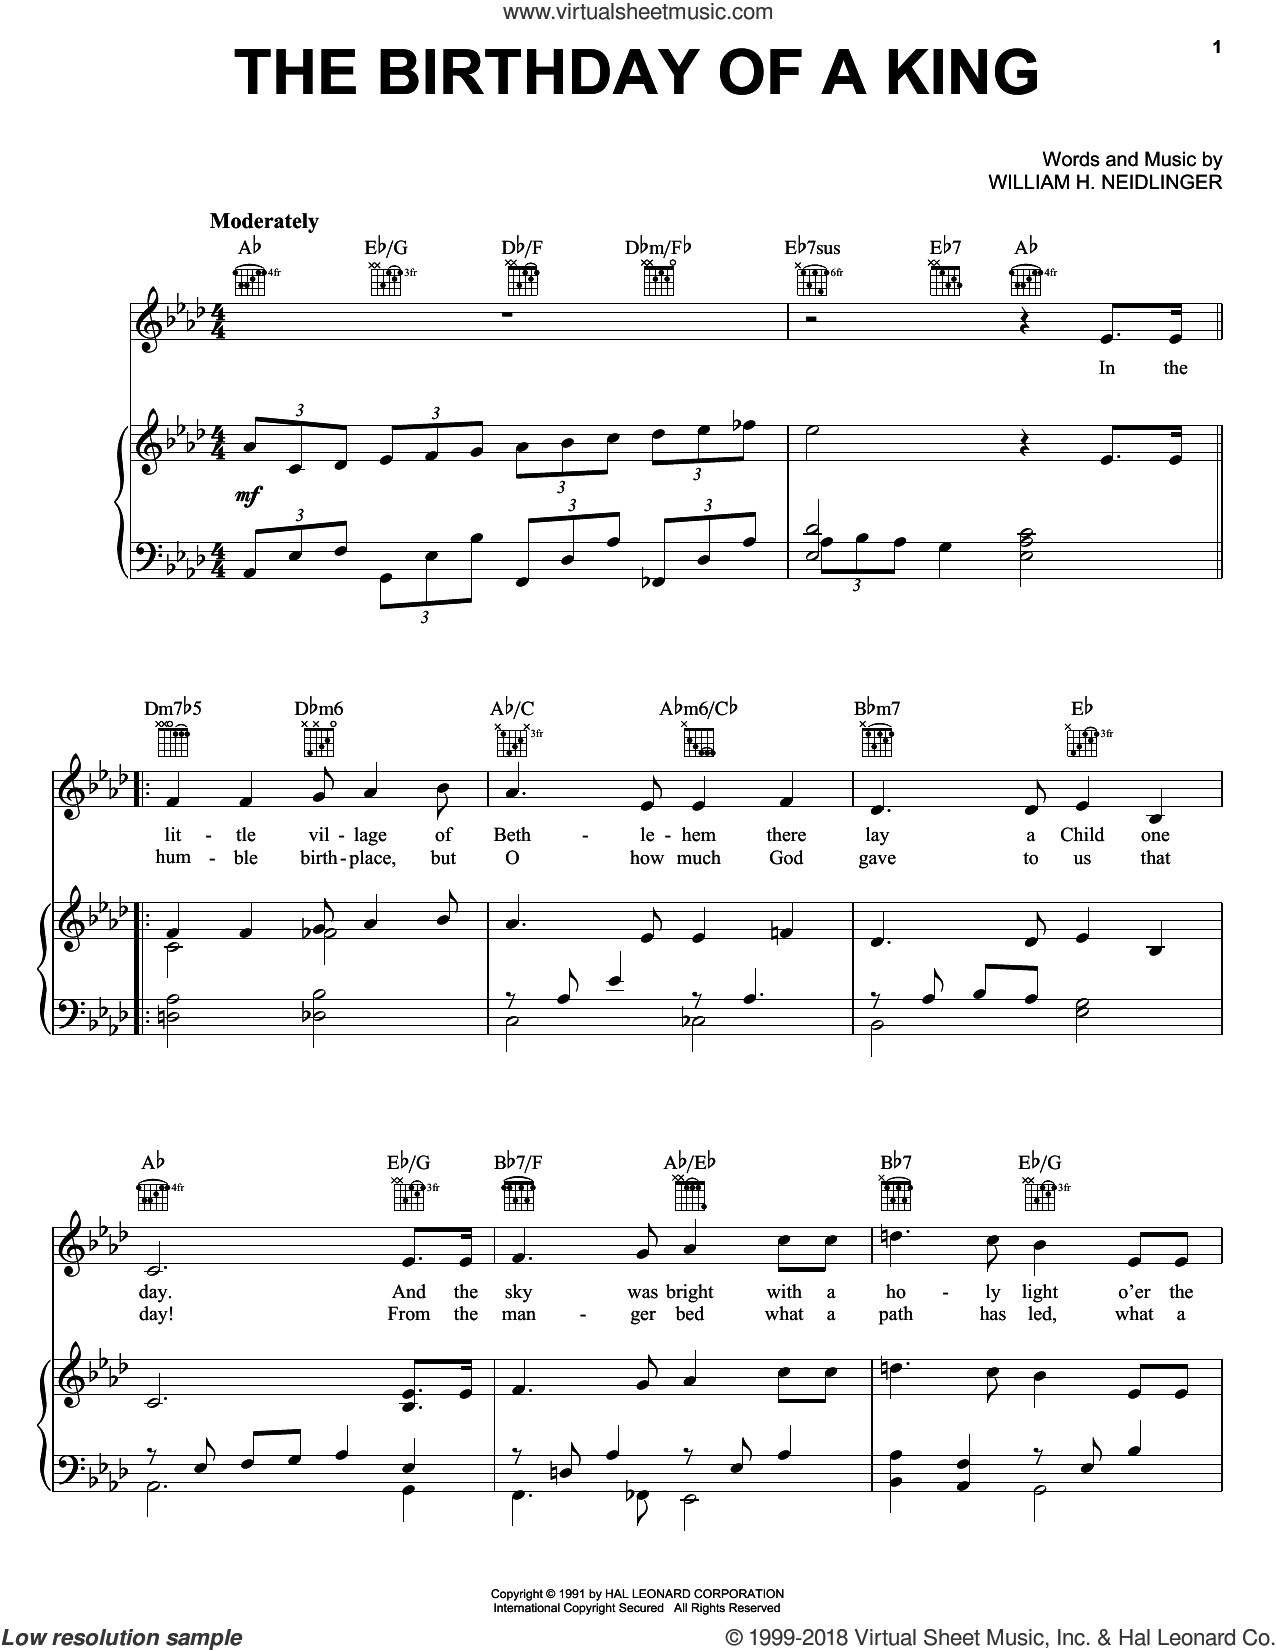 The Birthday of a King (Neidlinger) sheet music for voice, piano or guitar by William Harold Neidlinger